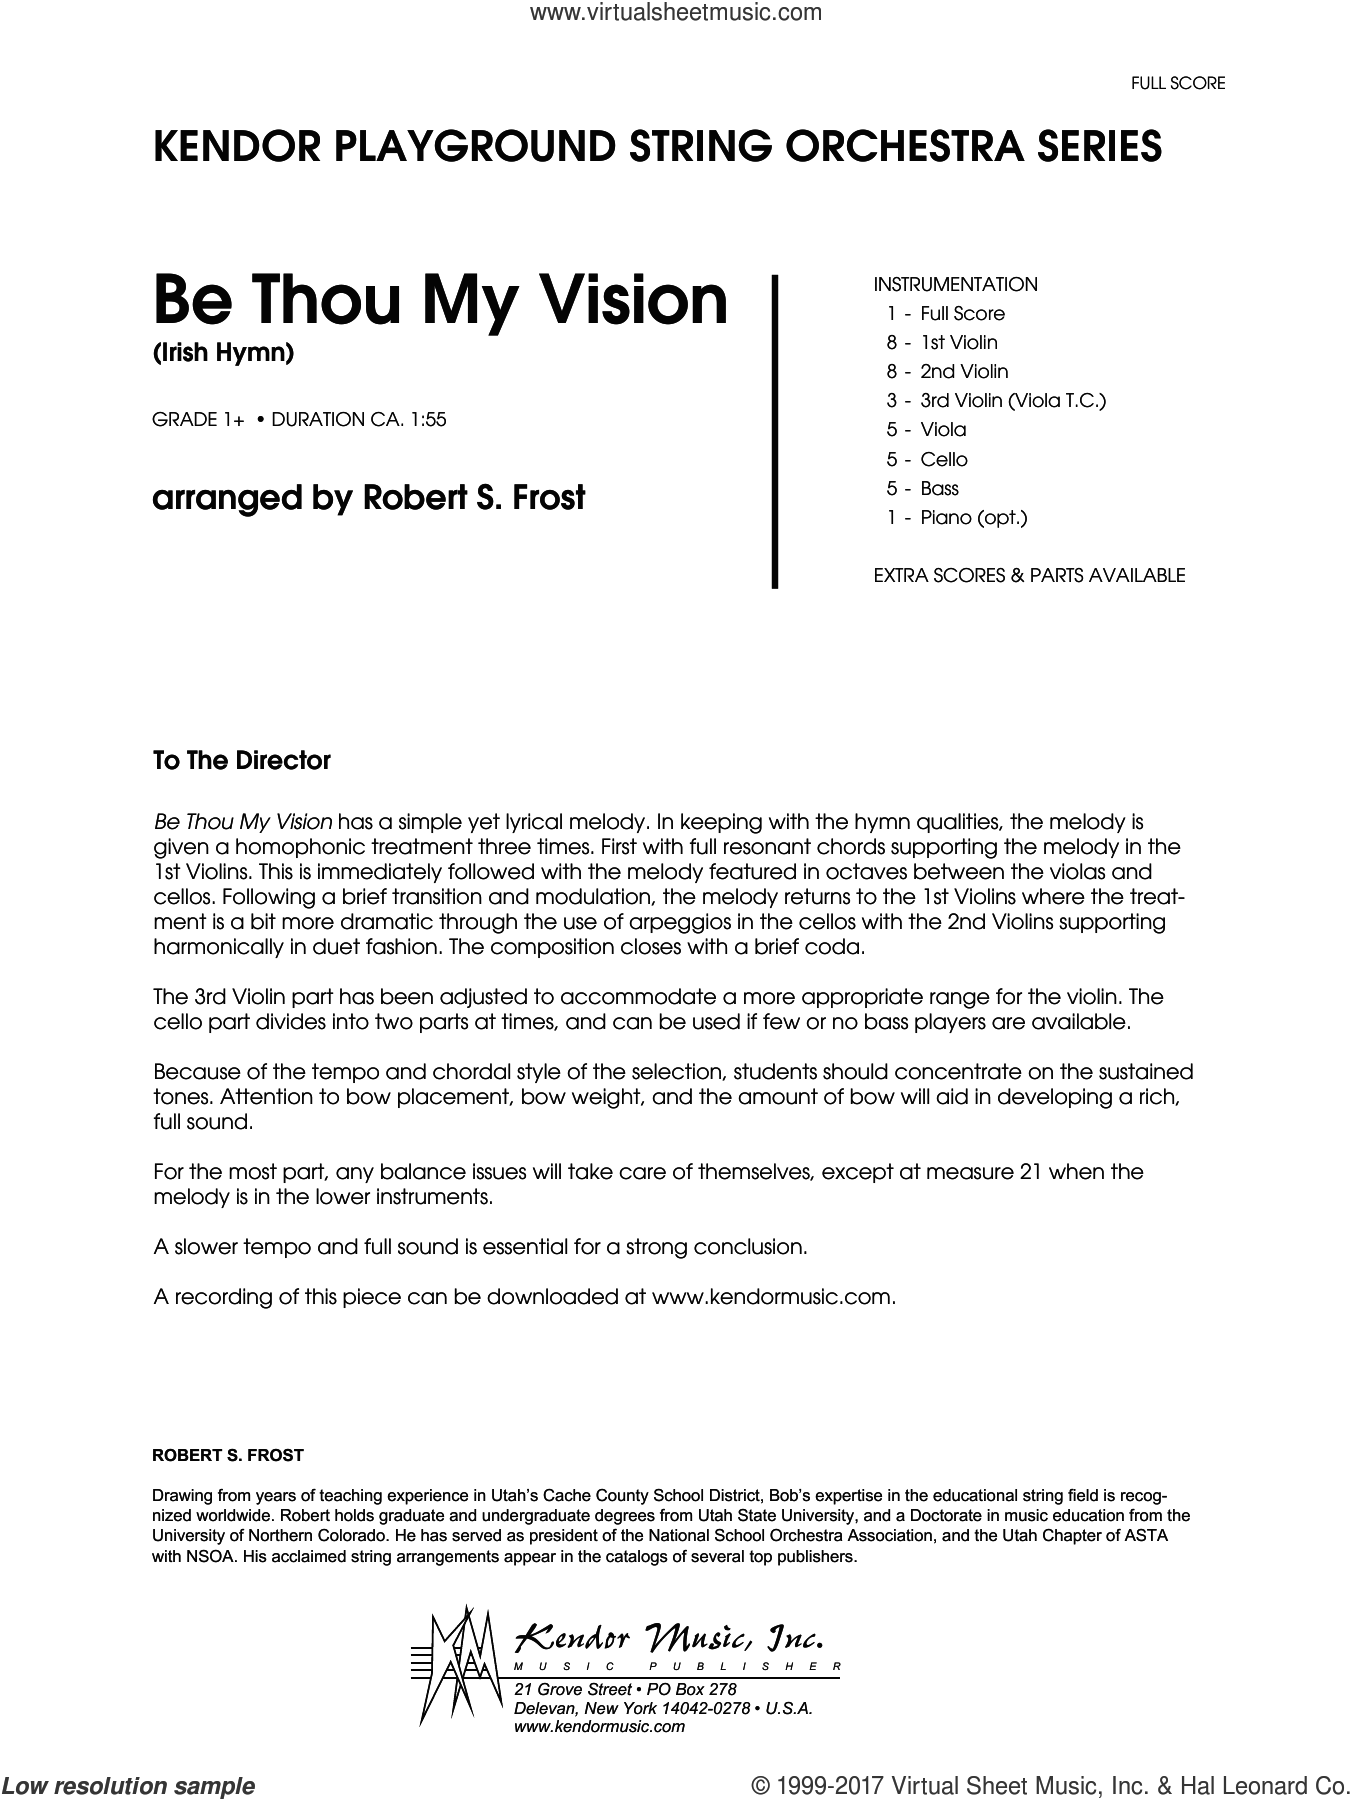 Be Thou My Vision (Irish Hymn) (COMPLETE) sheet music for orchestra by Robert S. Frost and Miscellaneous, intermediate skill level